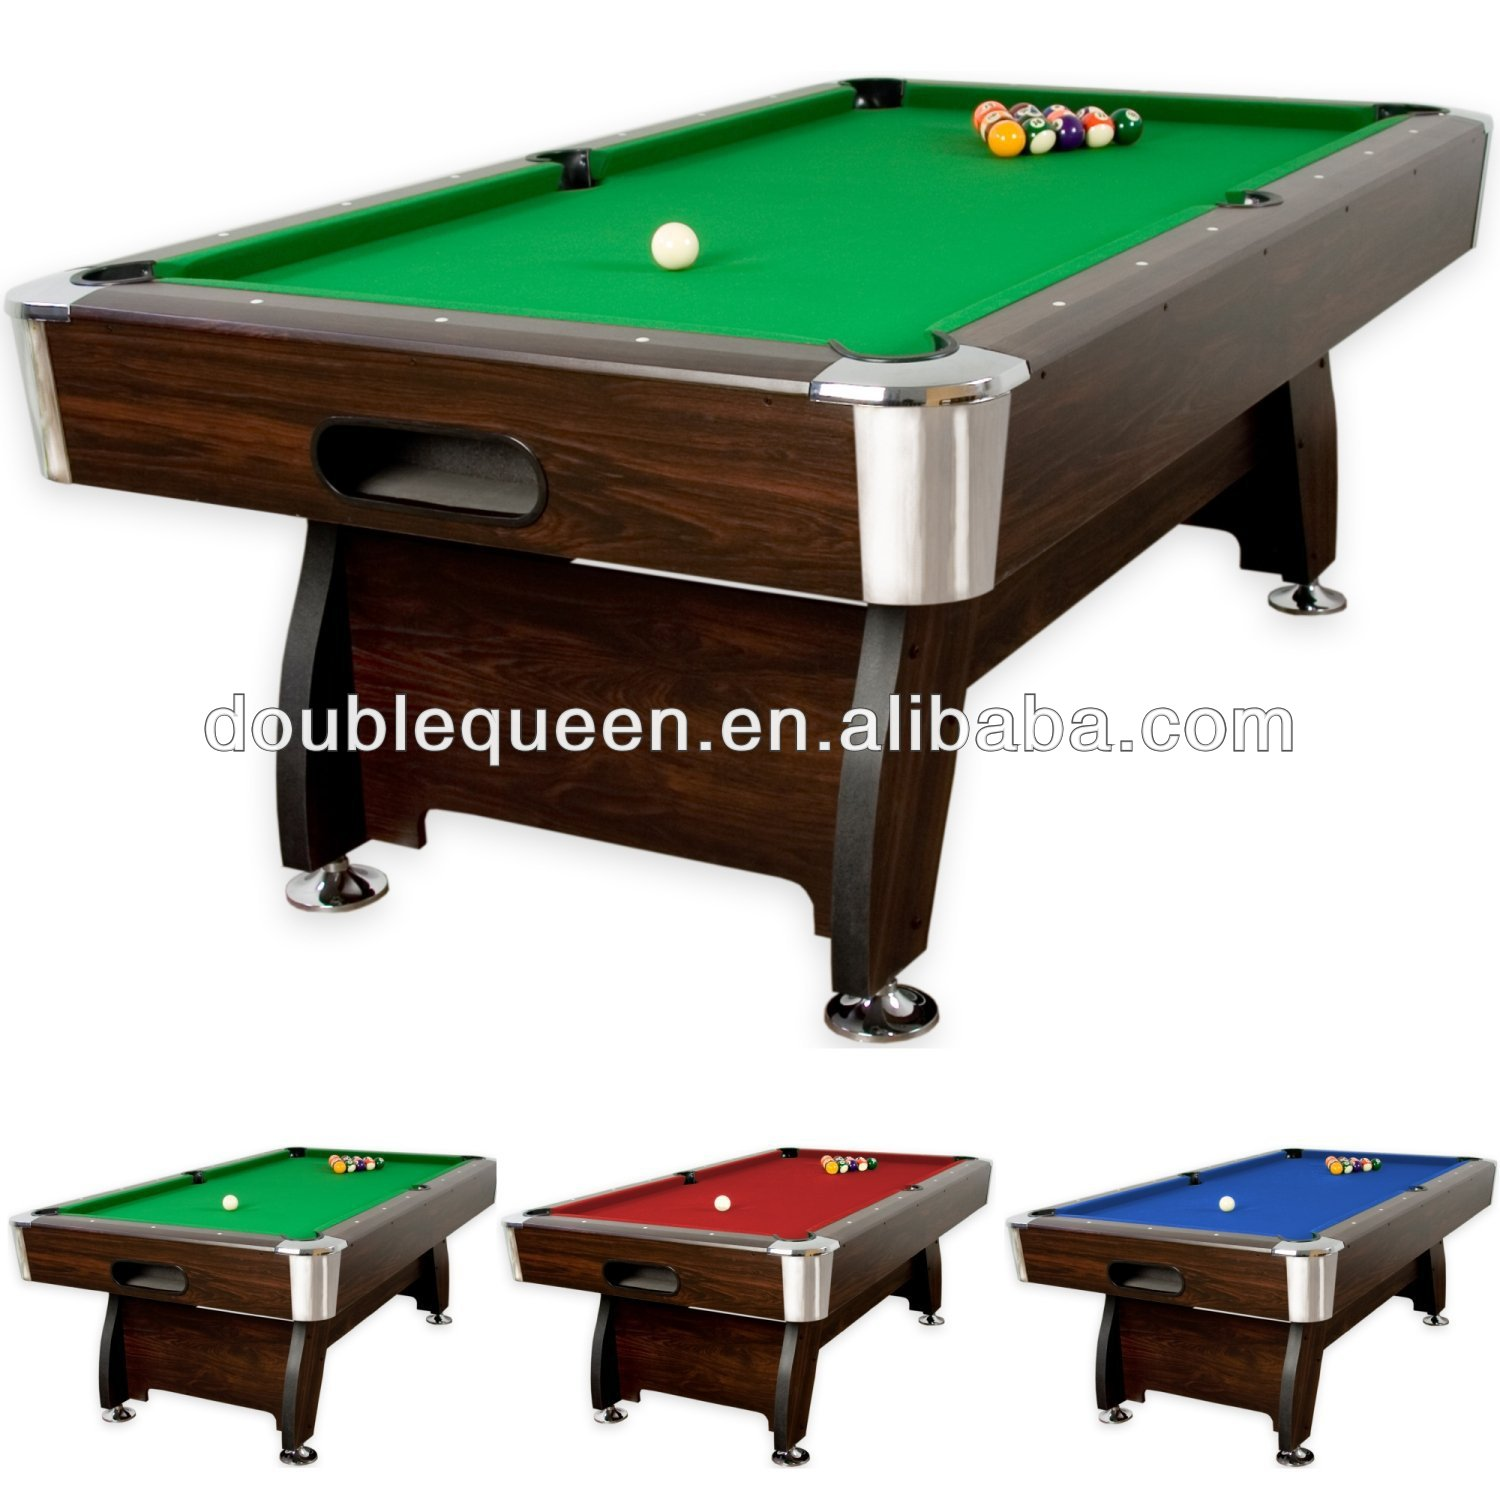 Pool Table Felt Designs top gun pool table Custom Pool Table Felt Designs Custom Pool Table Felt Designs Suppliers And Manufacturers At Alibabacom